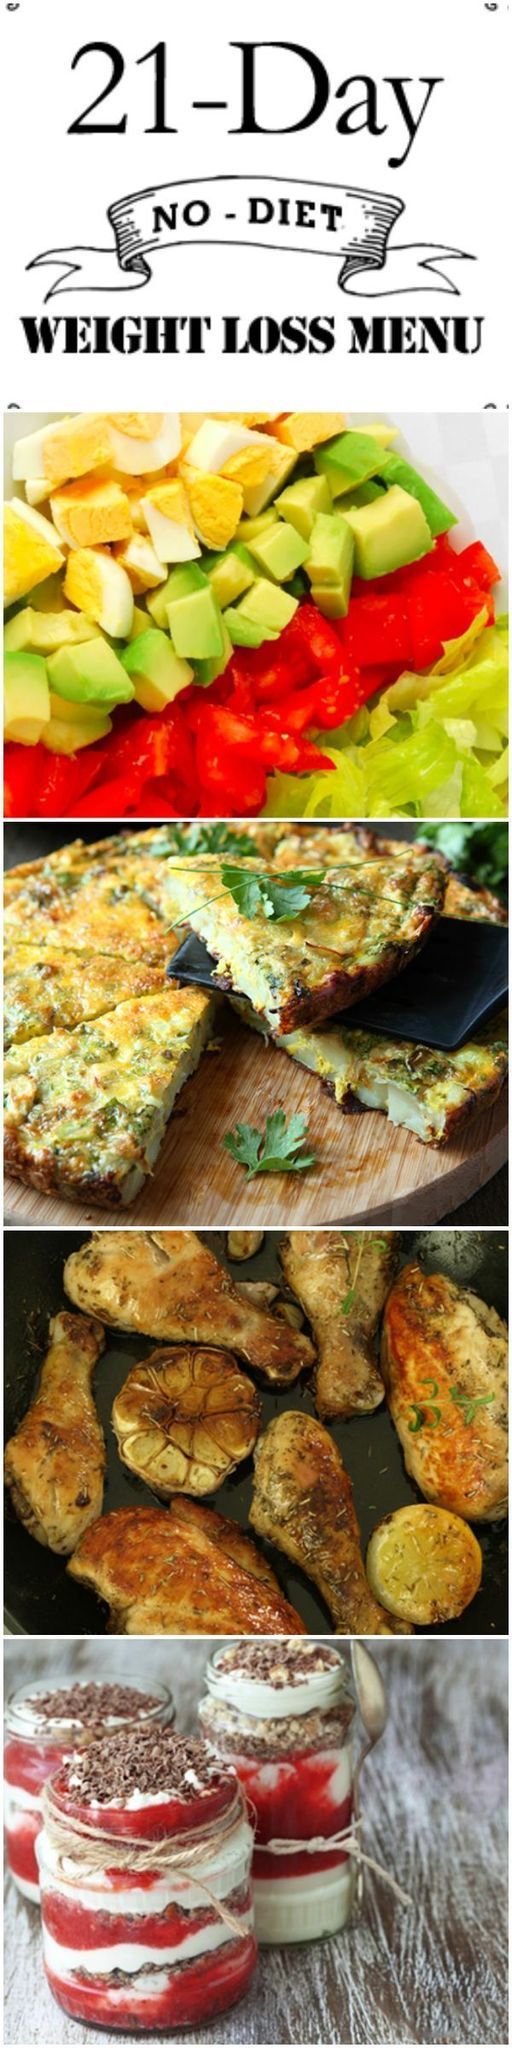 best Healthy images on Pinterest  Cooking recipes Buzzfeed